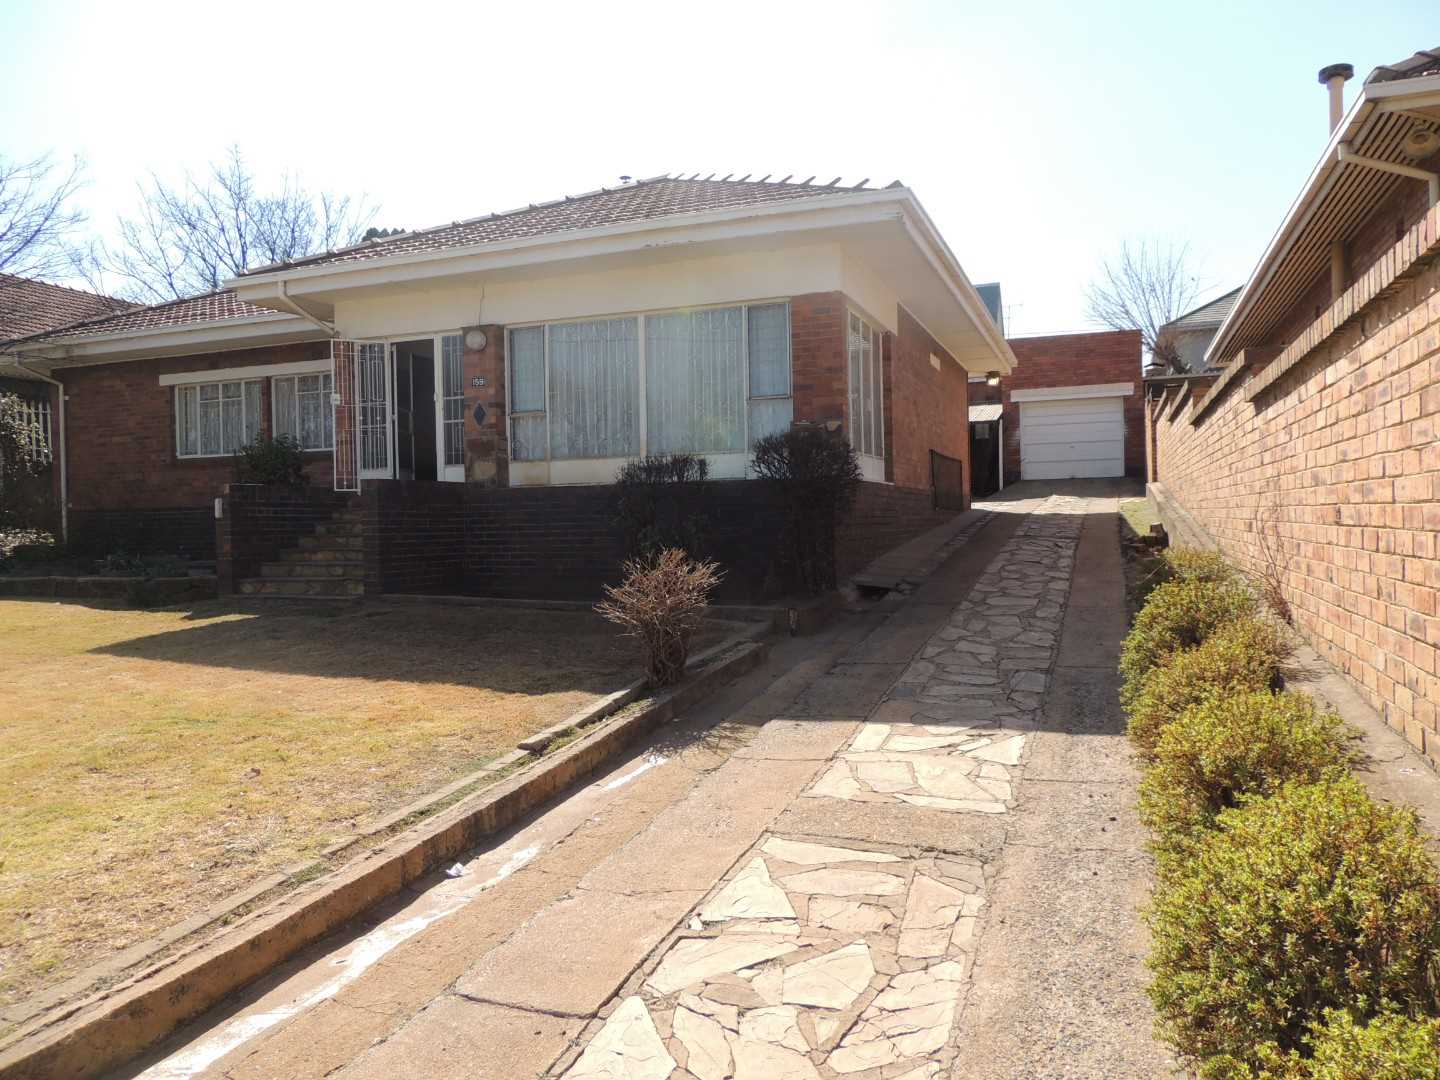 Right Address, Perfect Price house in Linmeyer, Johannesburg